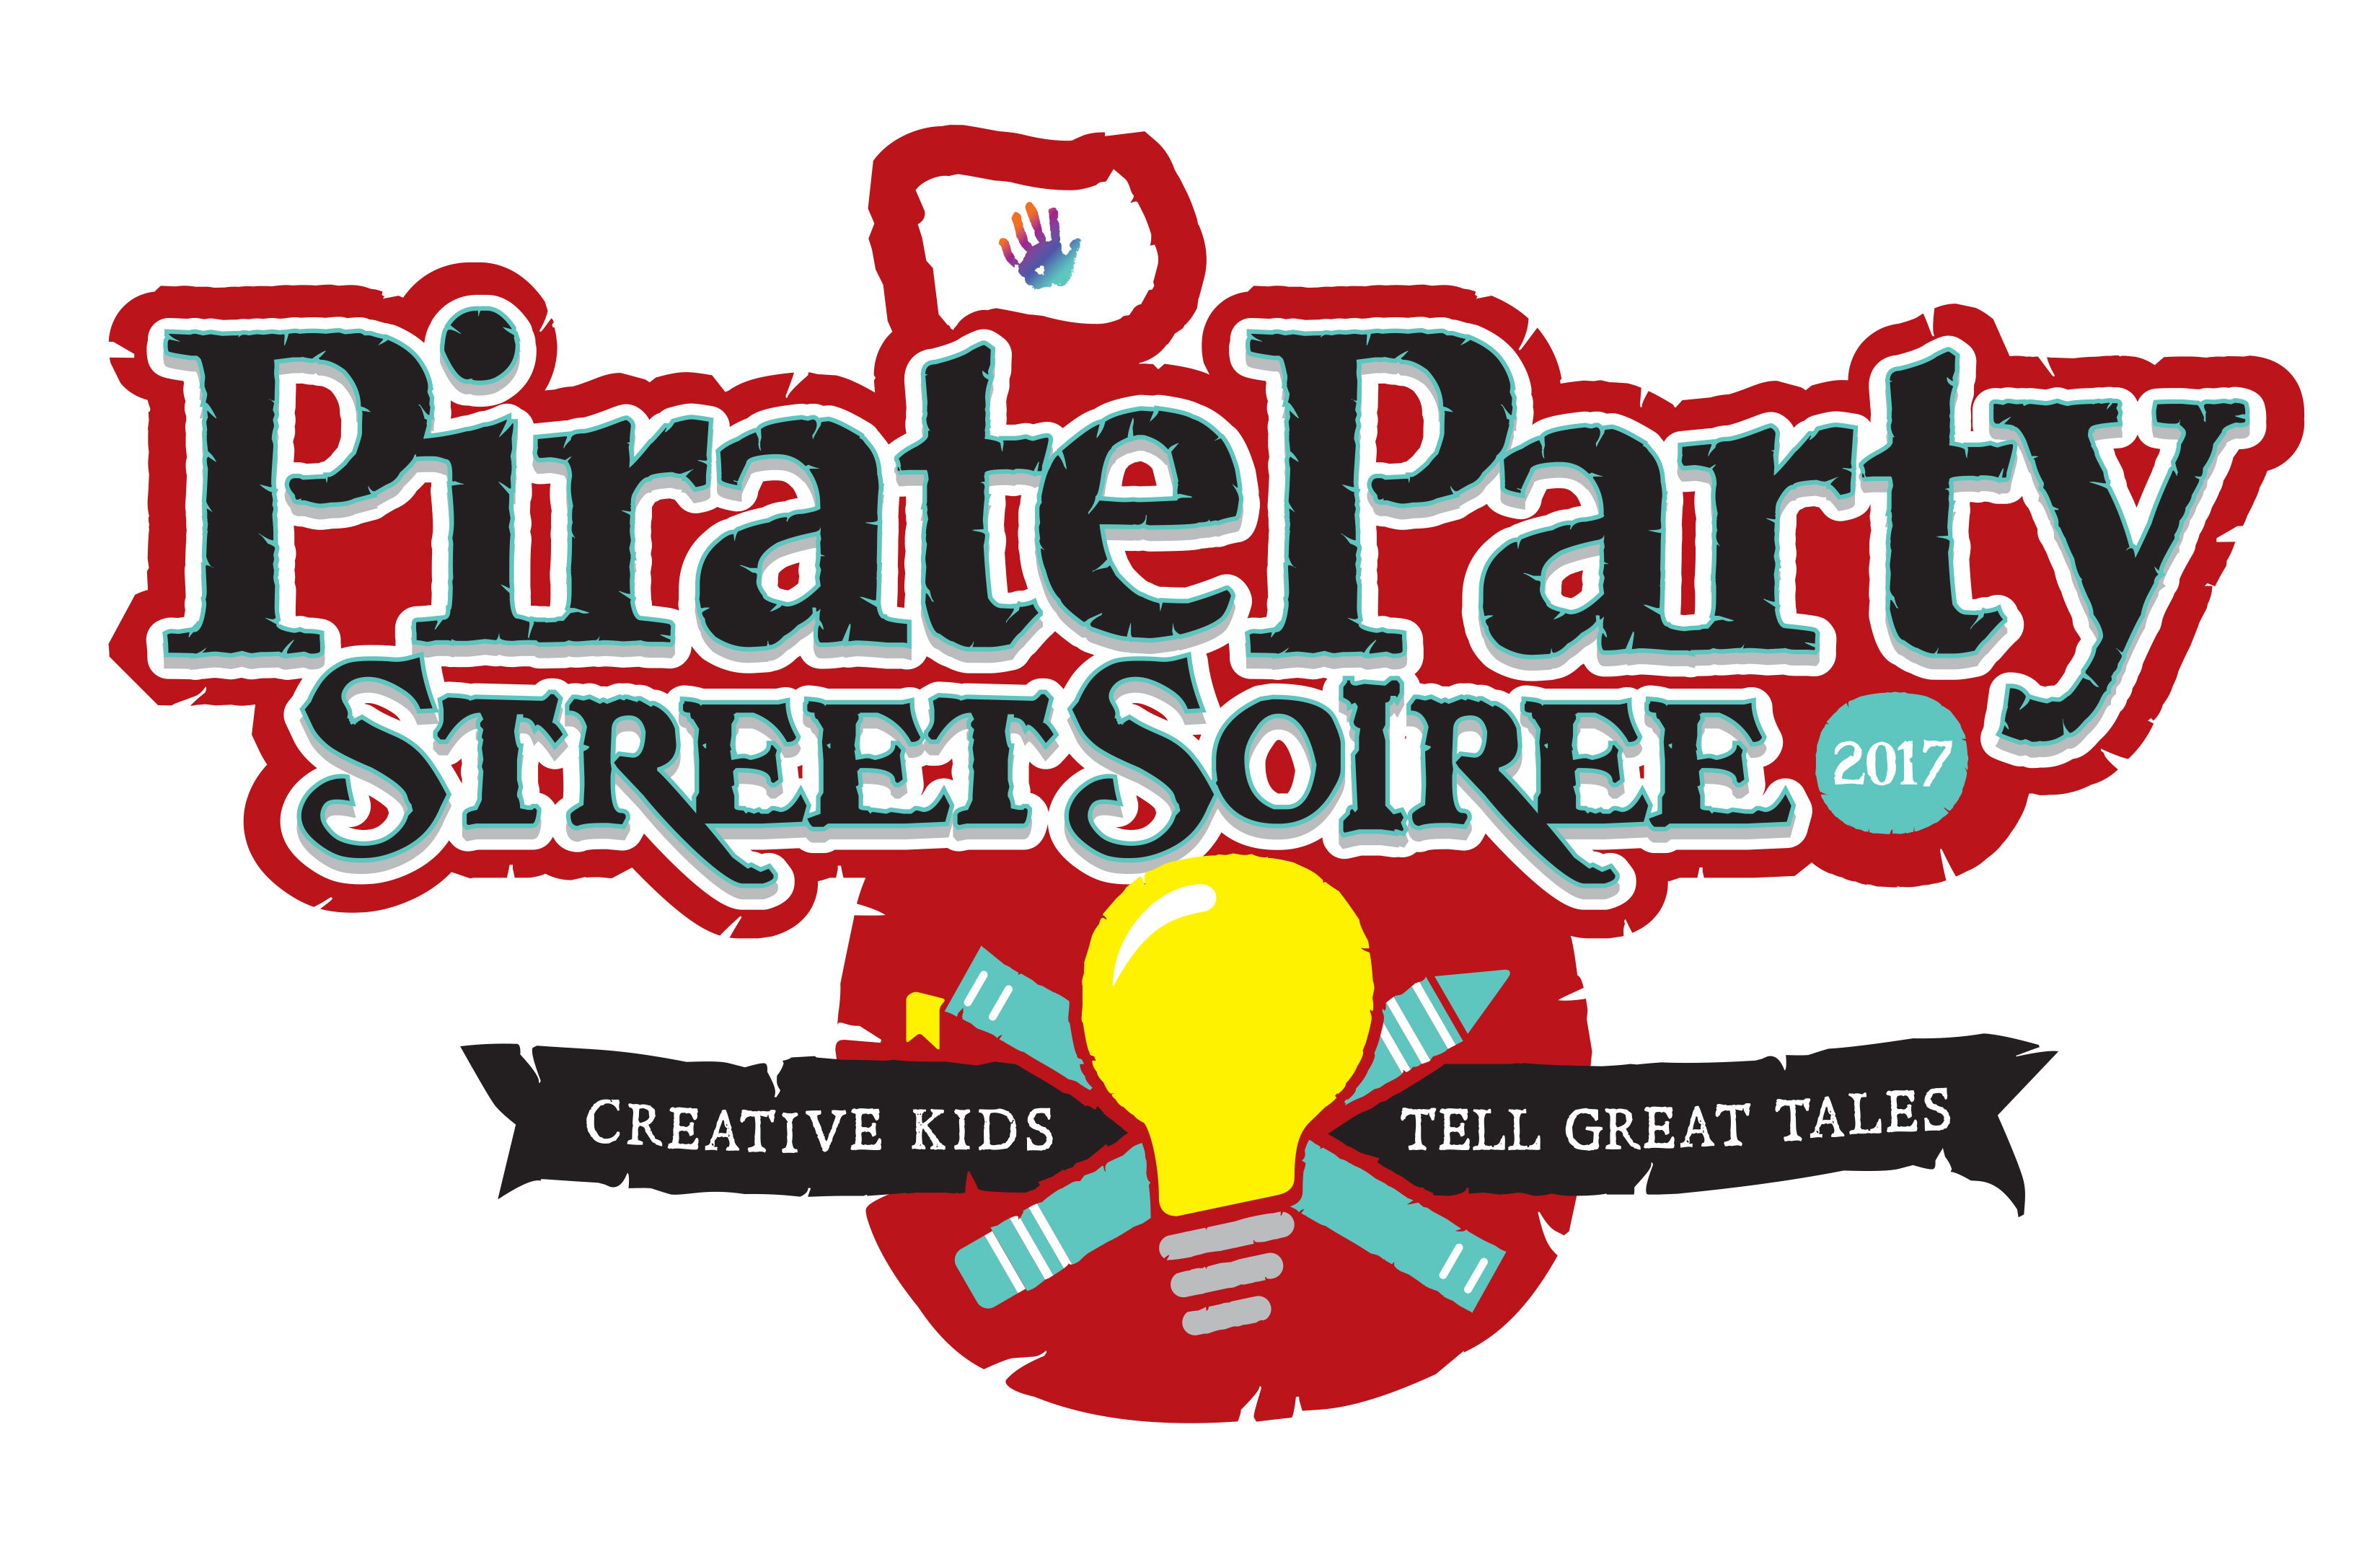 Street Soiree   ExpERIEnce Childrens Museum  Erie PA - Pirate museums in the us